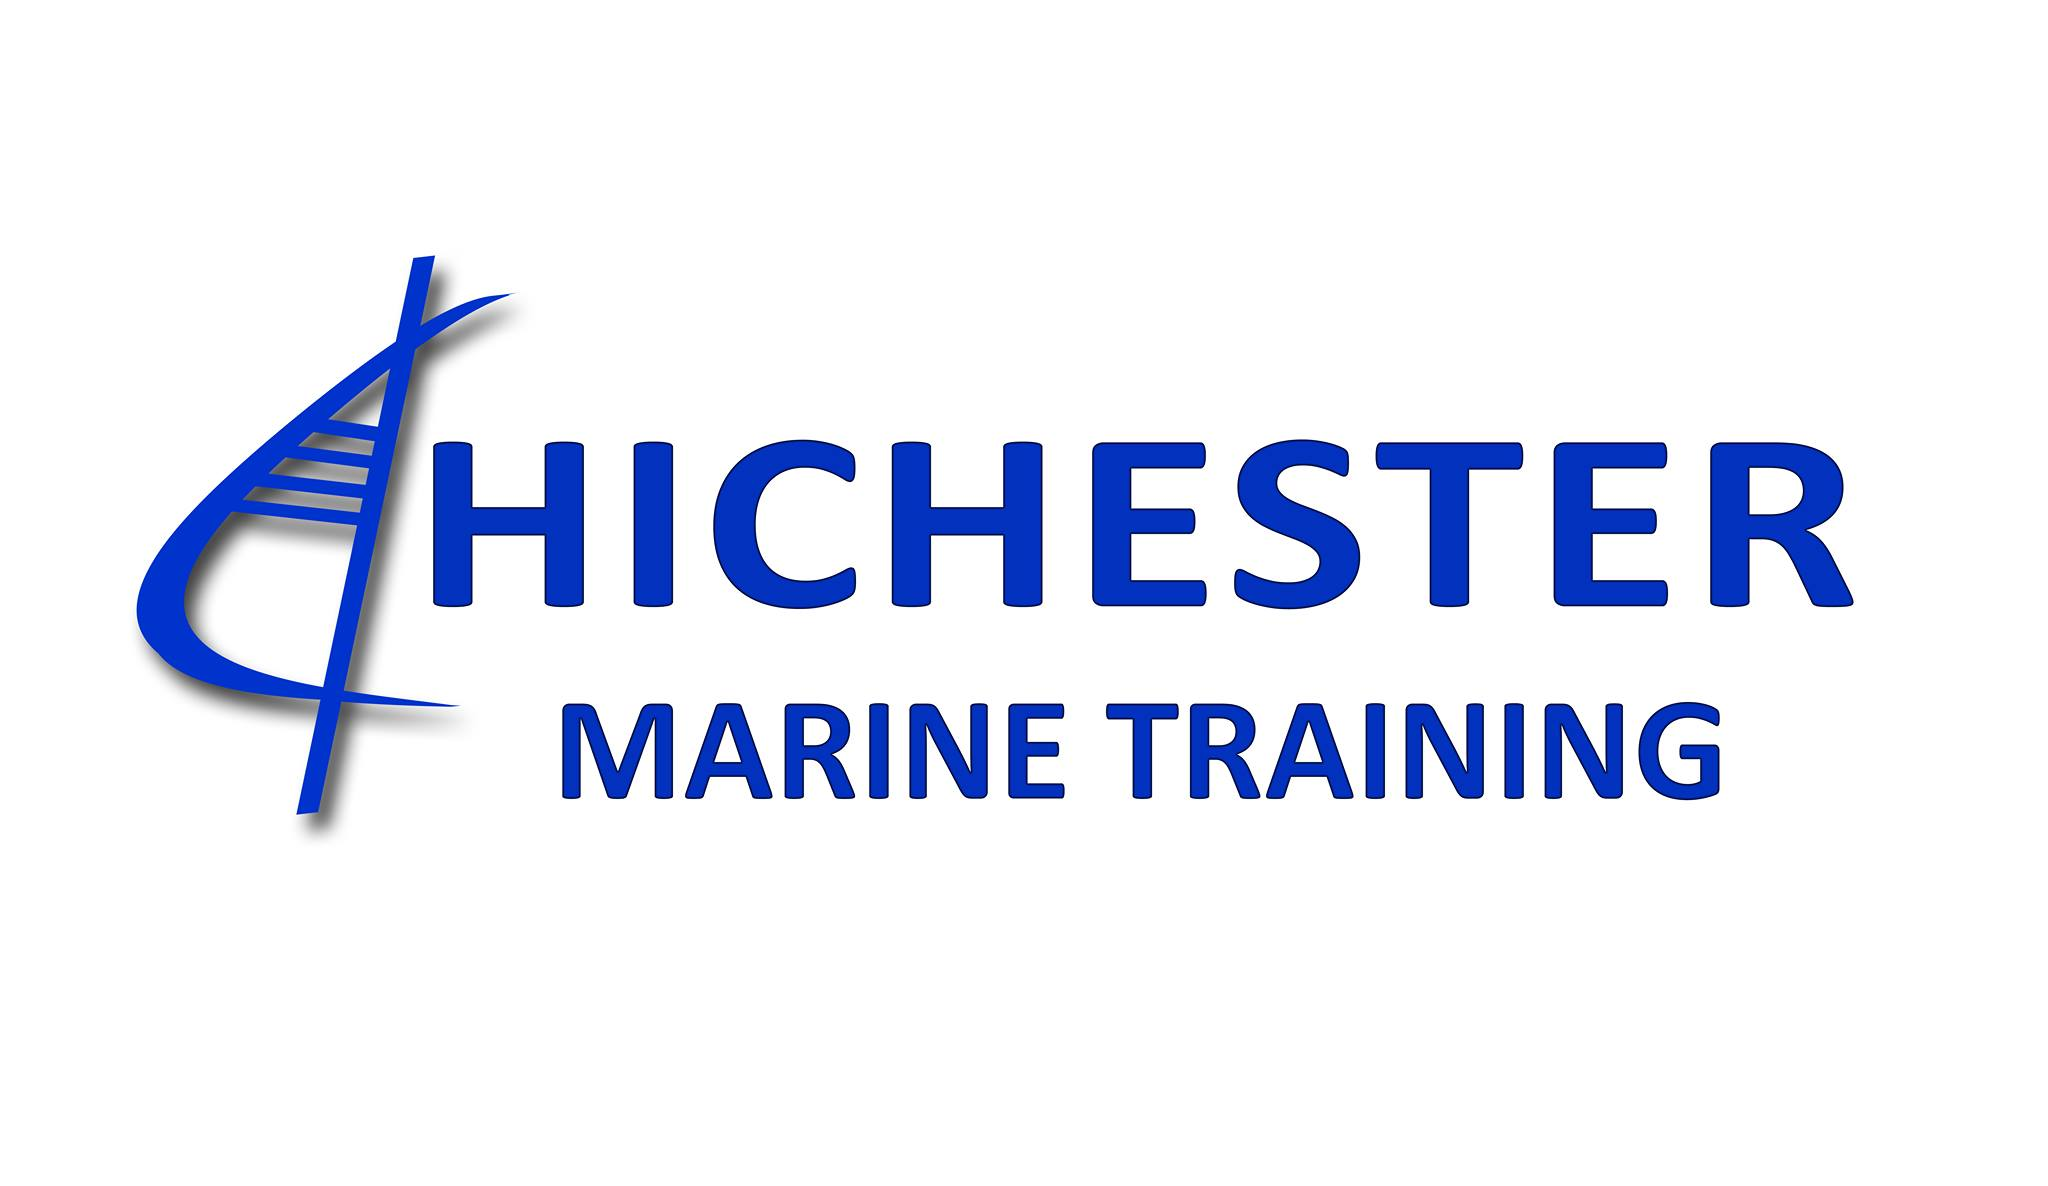 Chichester Marine Training Centre